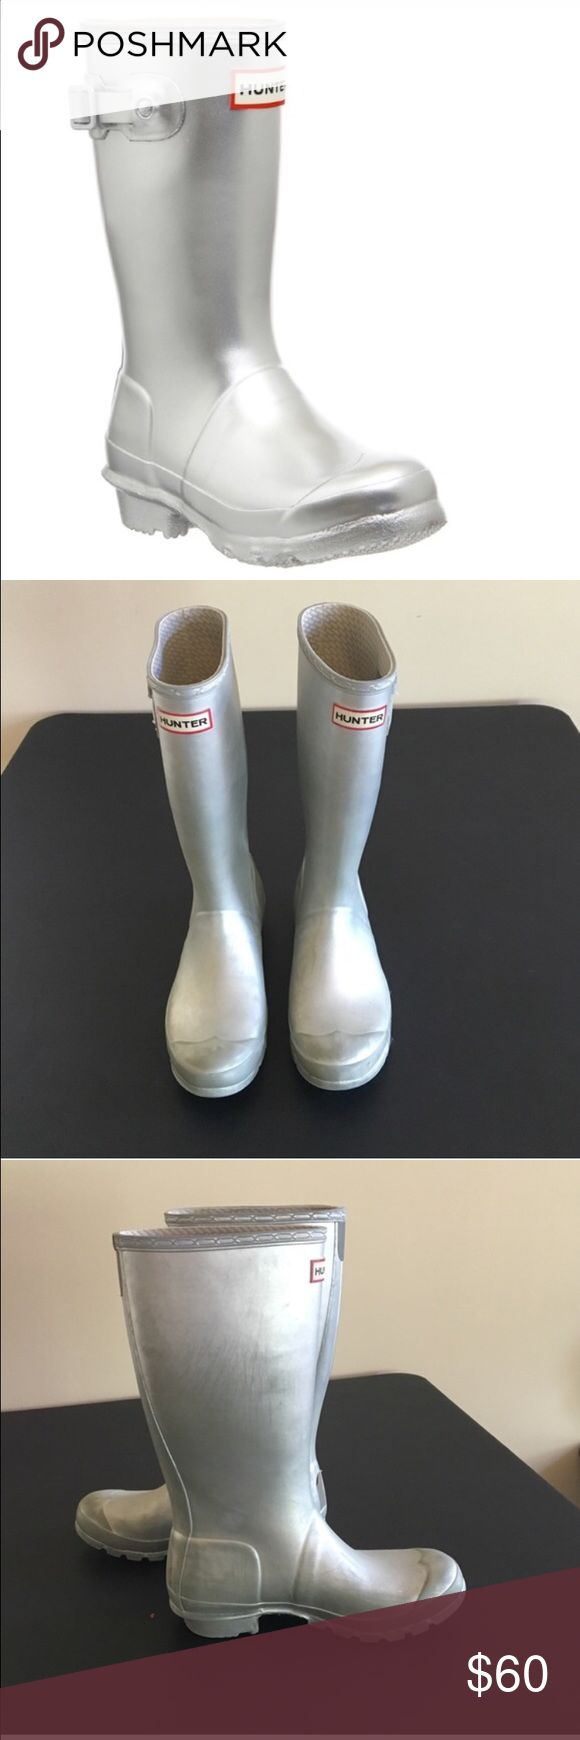 Hunter Boot Silver Wellies Size US 7 Hunter Boots in silver! They have been worn and the heels are slightly worn in but they are still in good condition otherwise! Hunter Boots Shoes Winter & Rain Boots